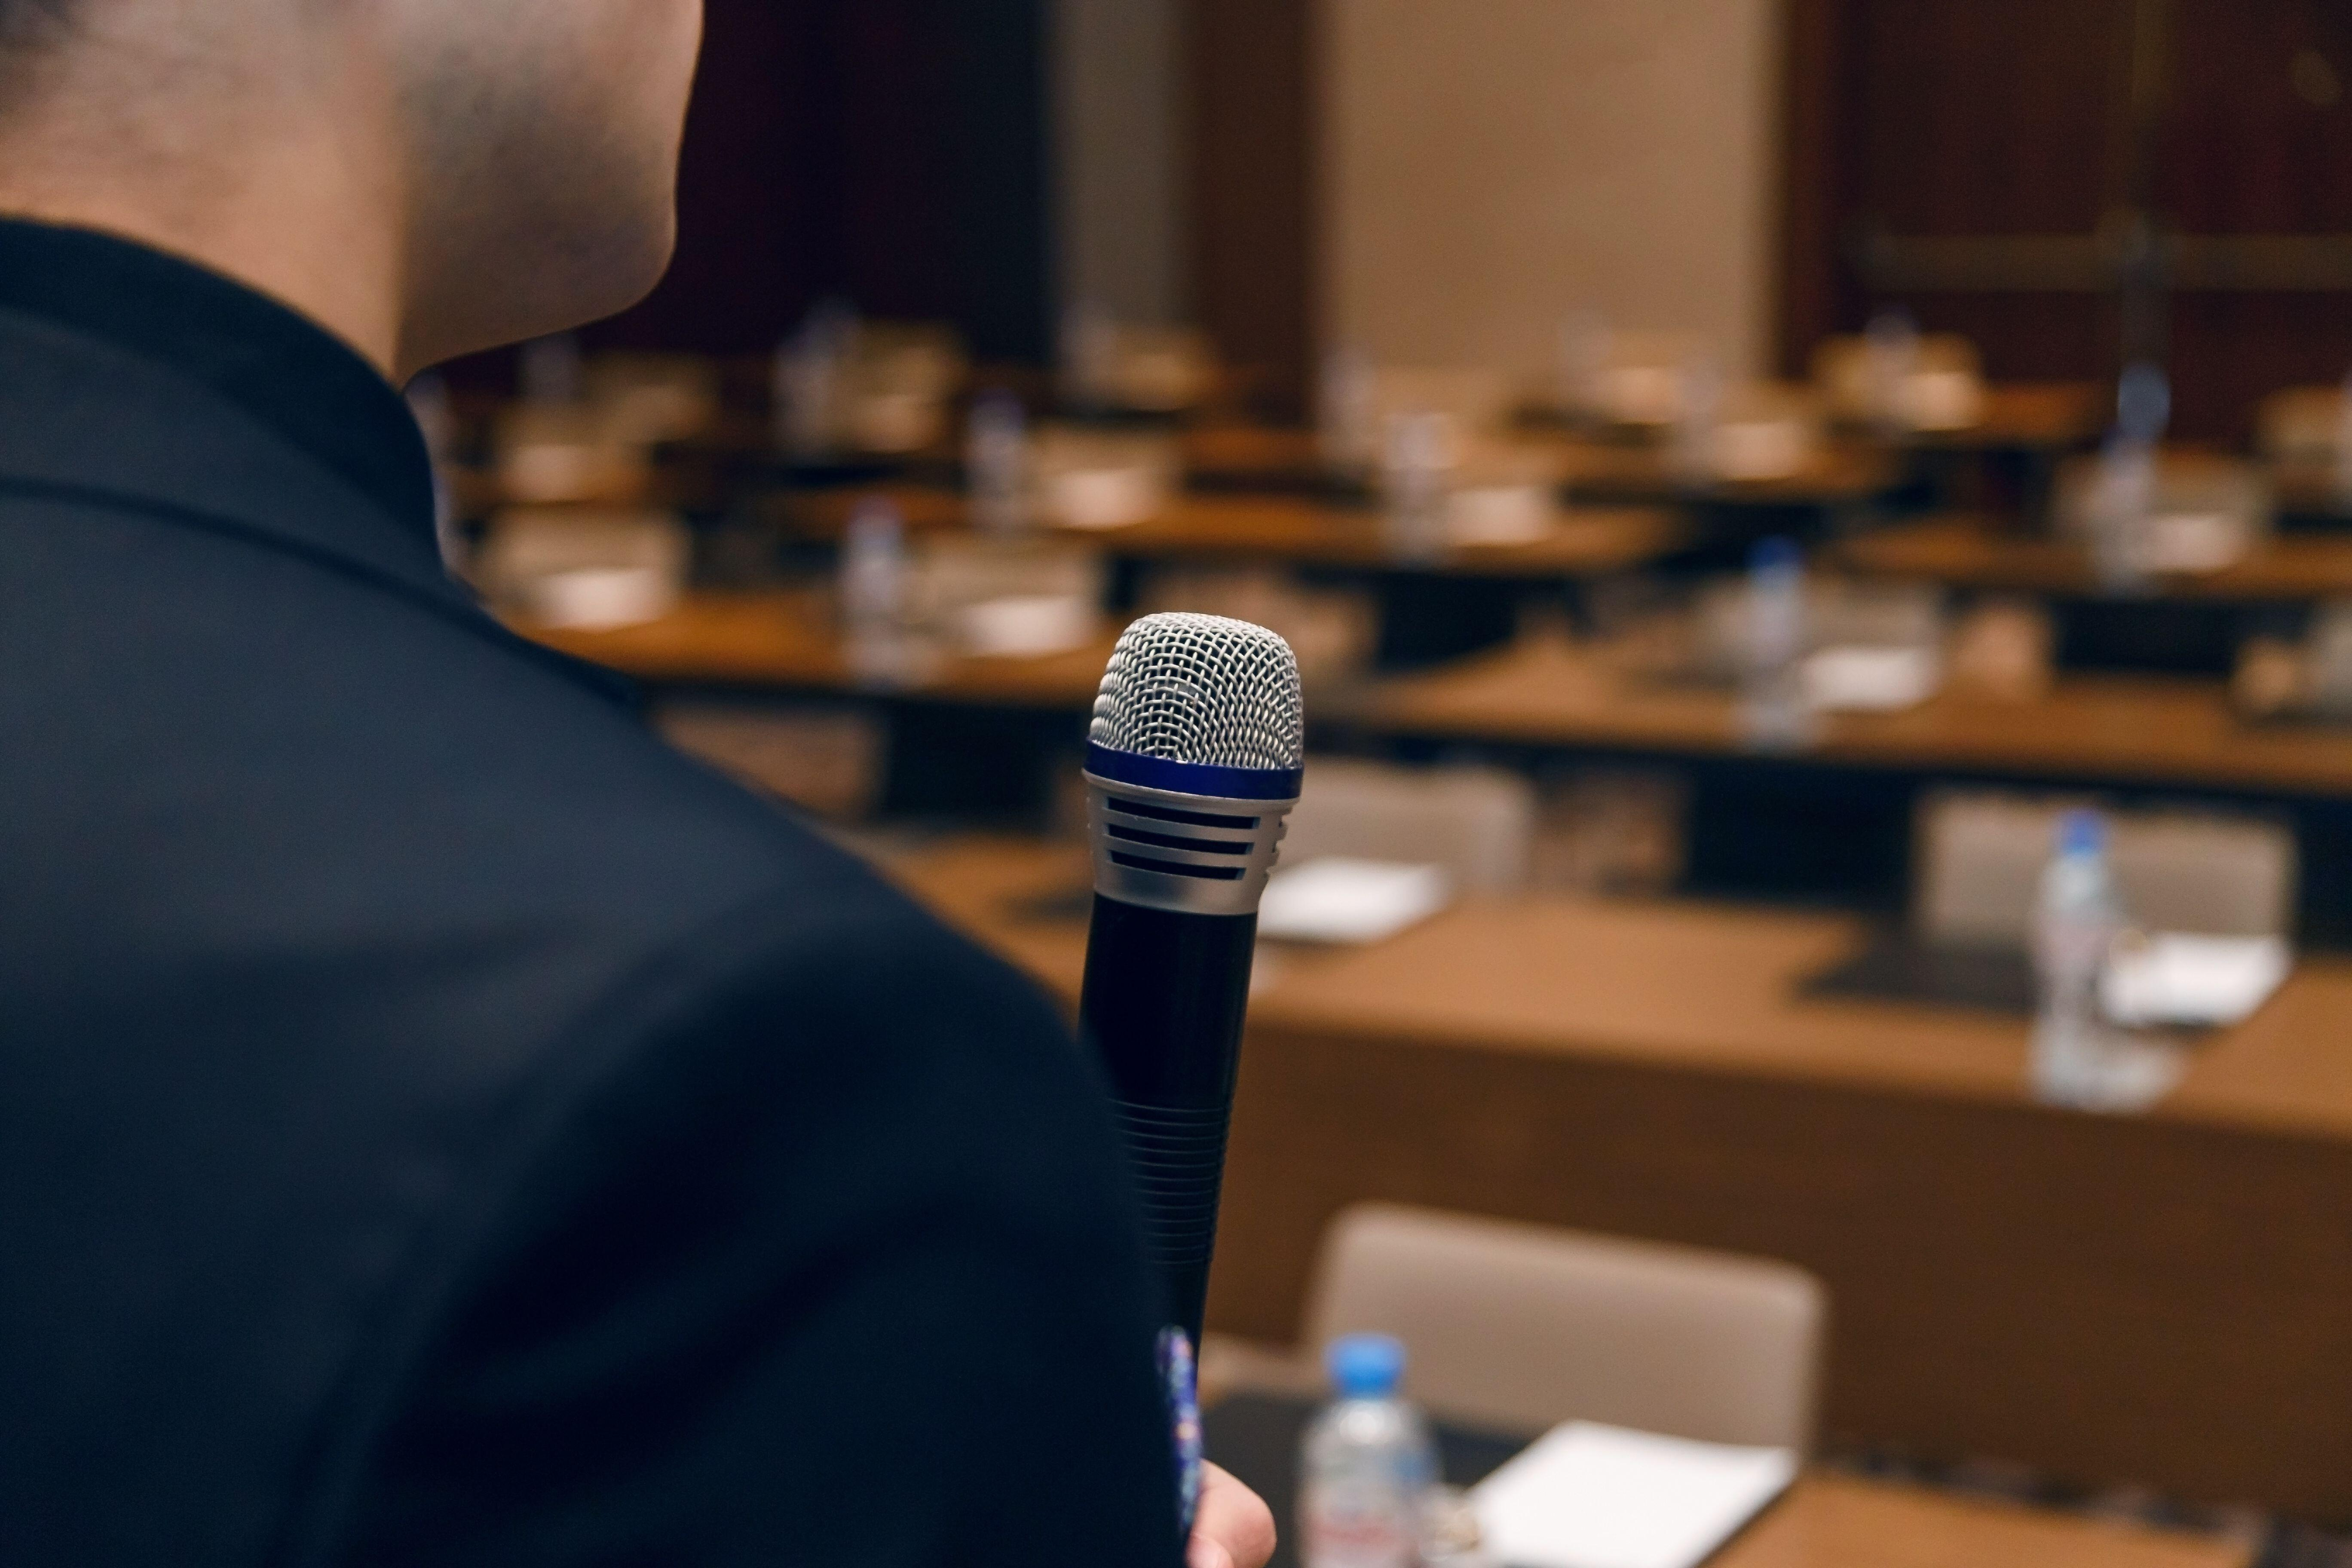 Microphone in hand of man in suit on background of empty conference hall. Rehearsal of public speaking